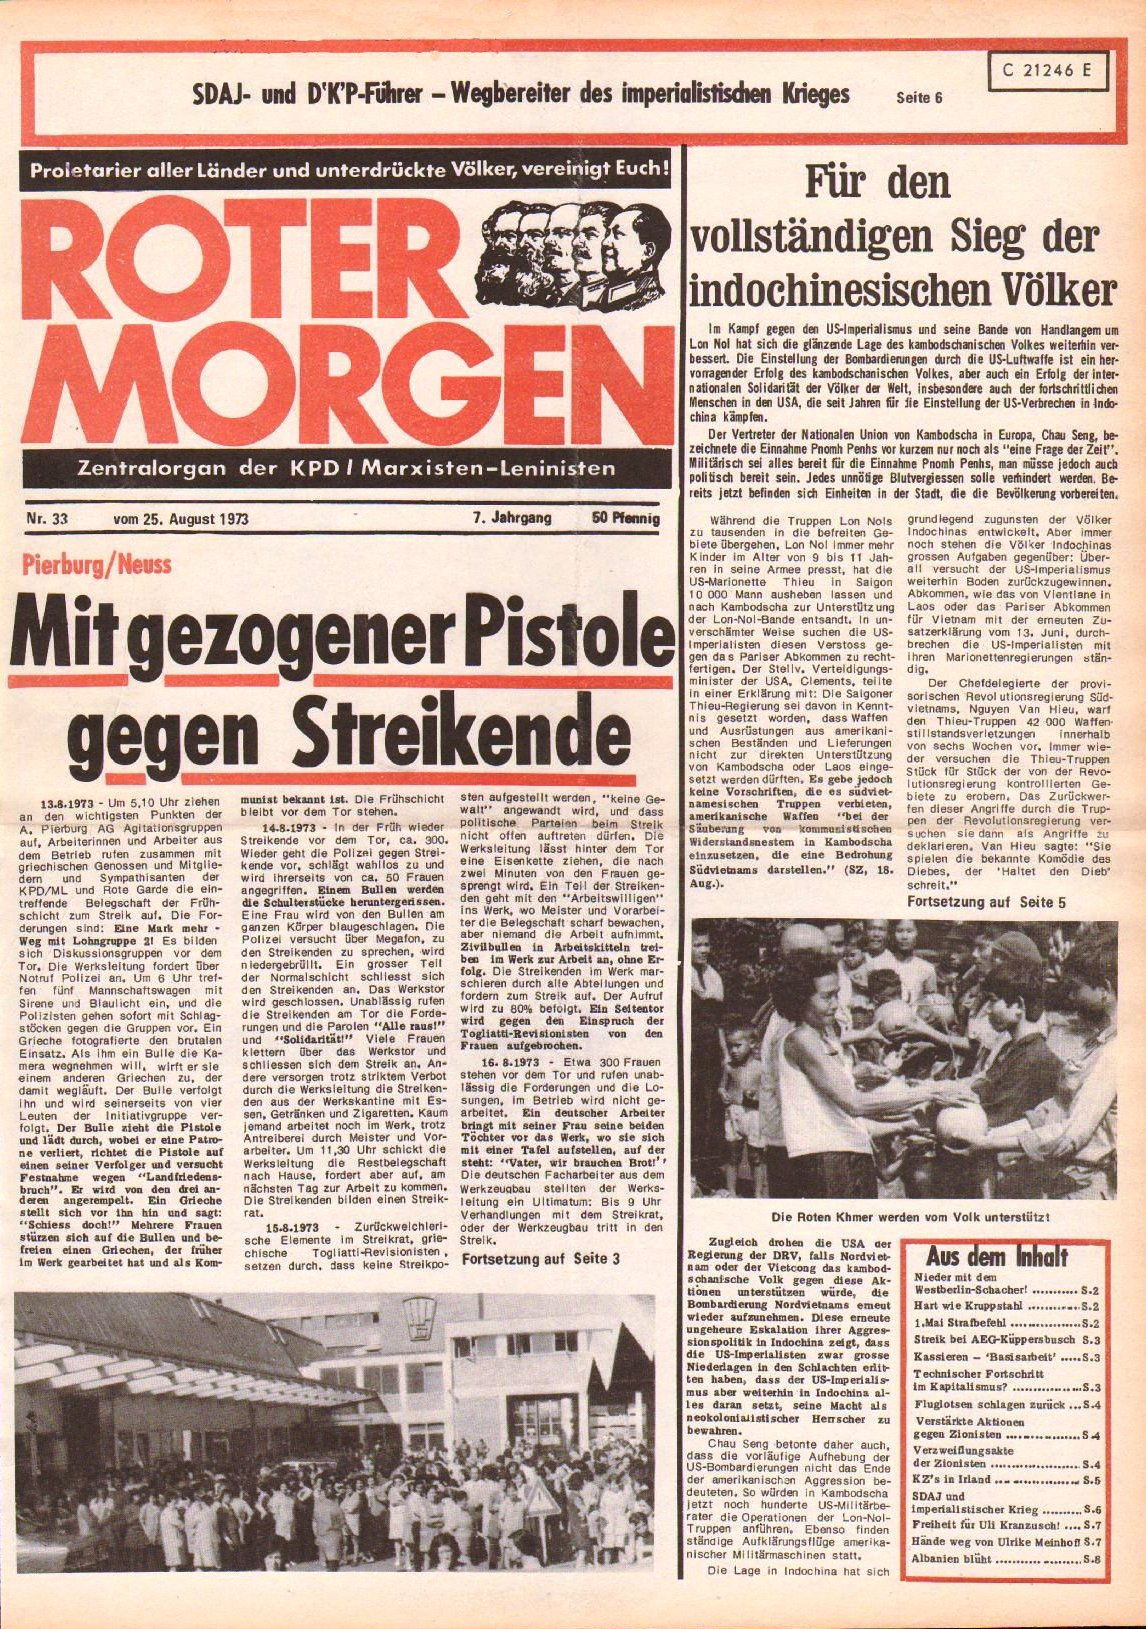 Roter Morgen, 7. Jg., 25. August 1973, Nr. 33, Seite 1